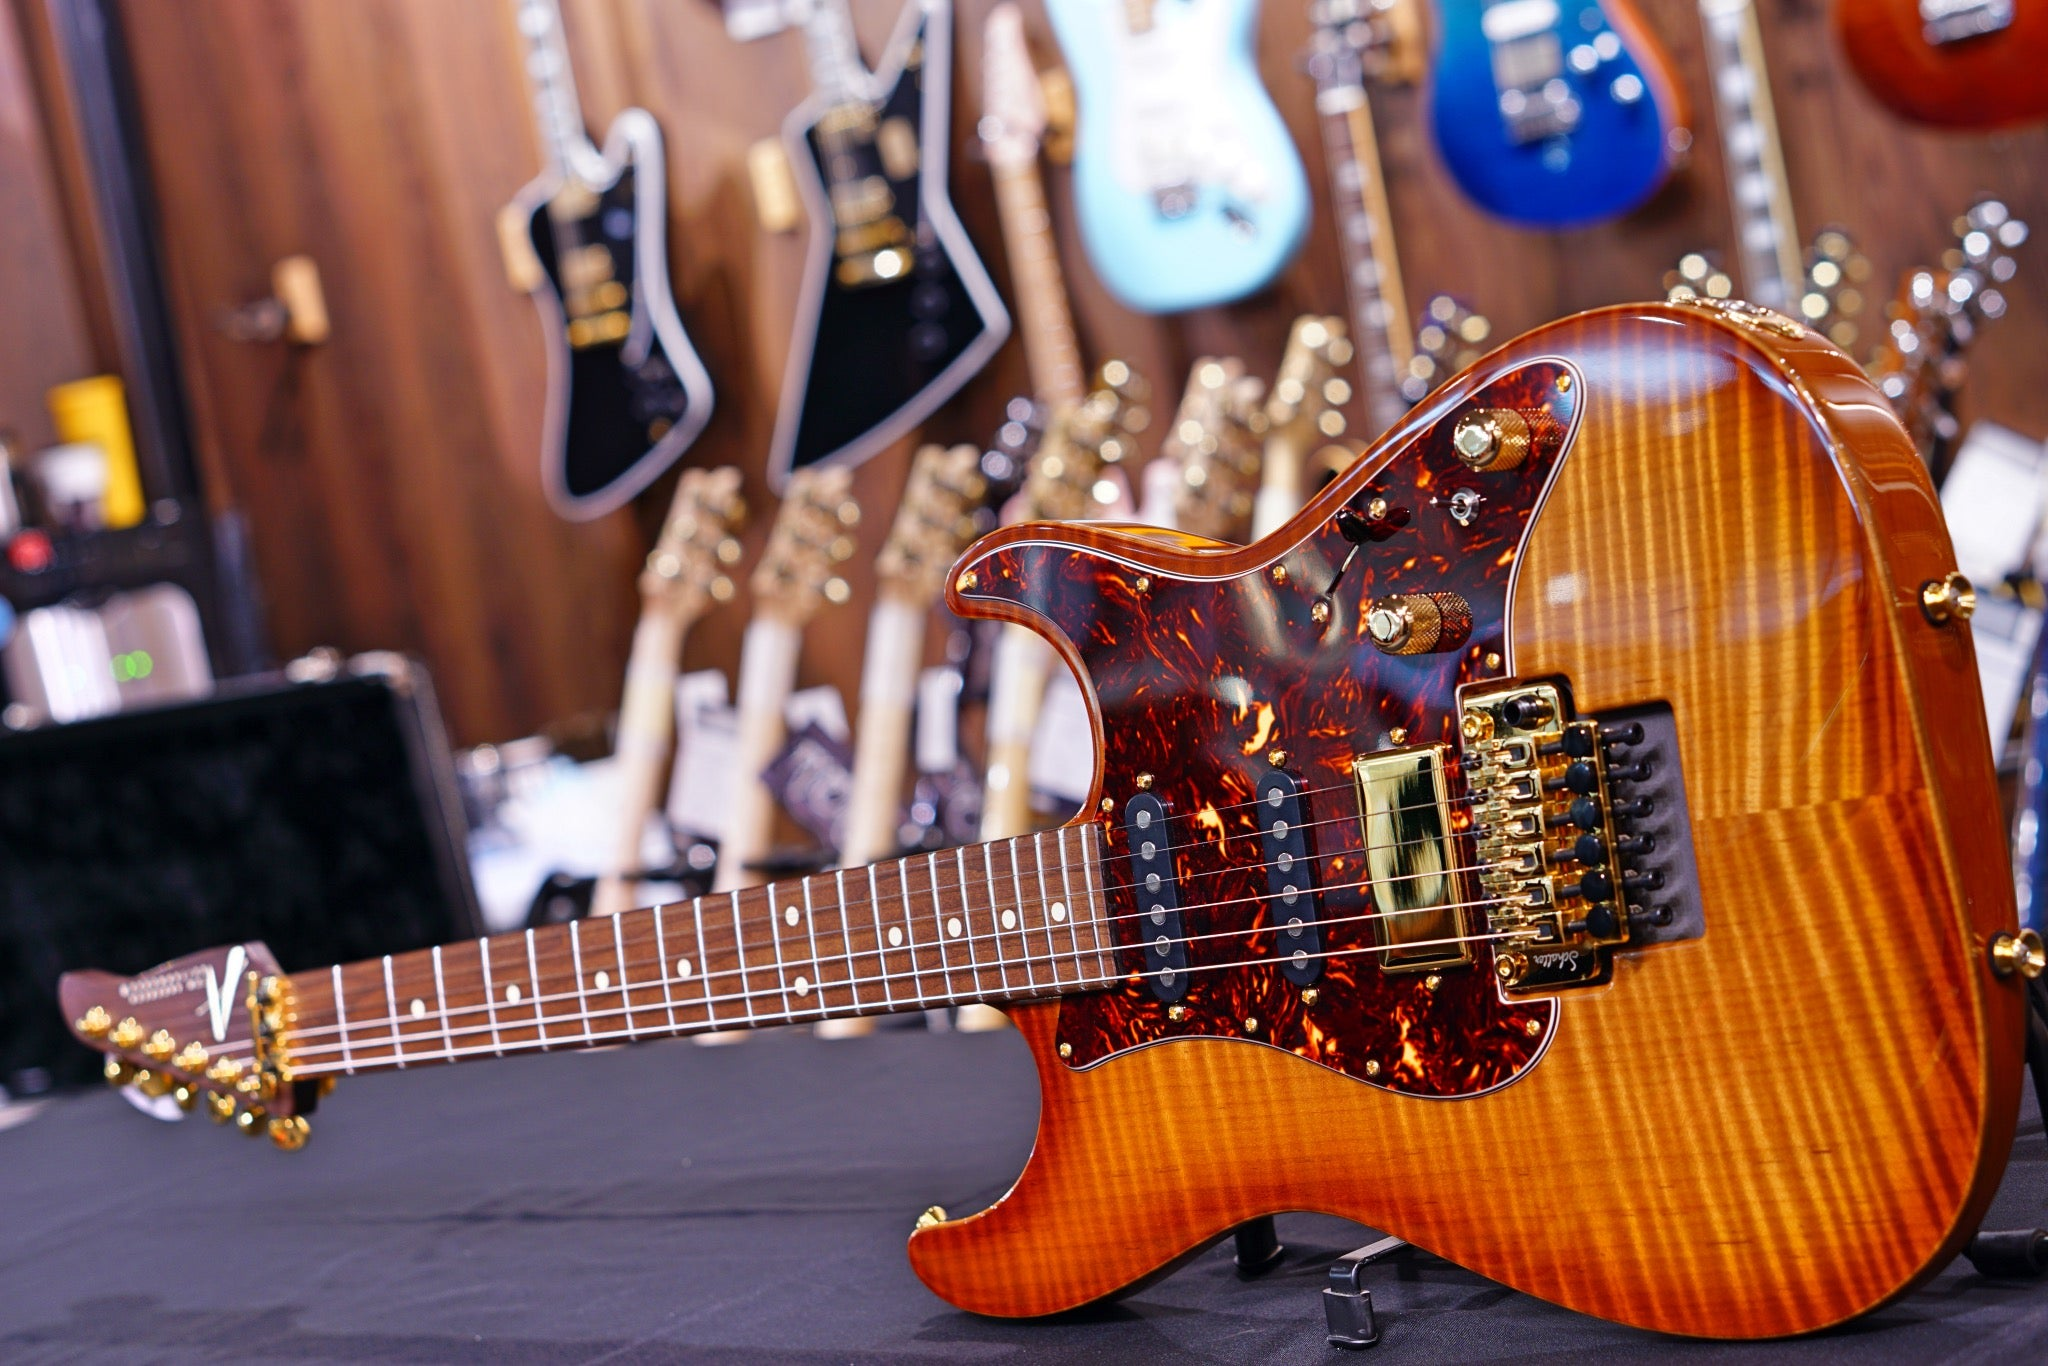 Anderson Drop Top Classic * 09-18-19N * Honey Shaded Edge Caramel flame top Anderson - HIENDGUITAR.COM